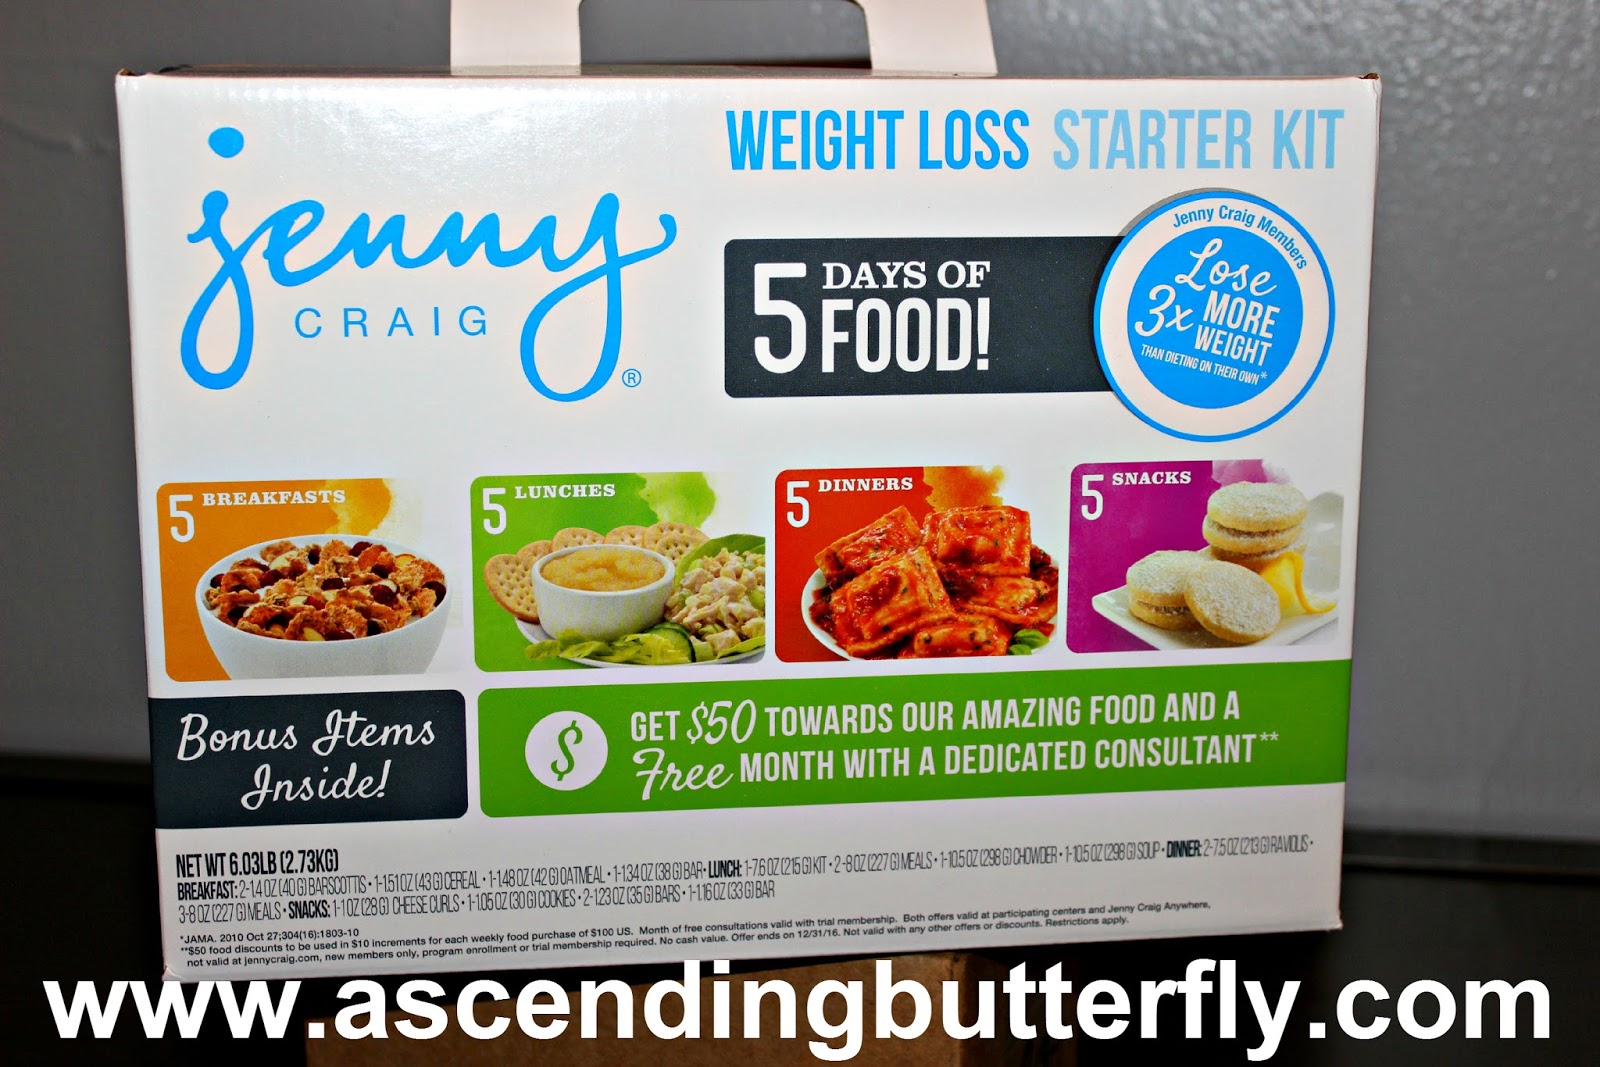 ead61d072e5 Jenny Craig's new weight loss starter kits being sold exclusively at Walmart.  If you ...